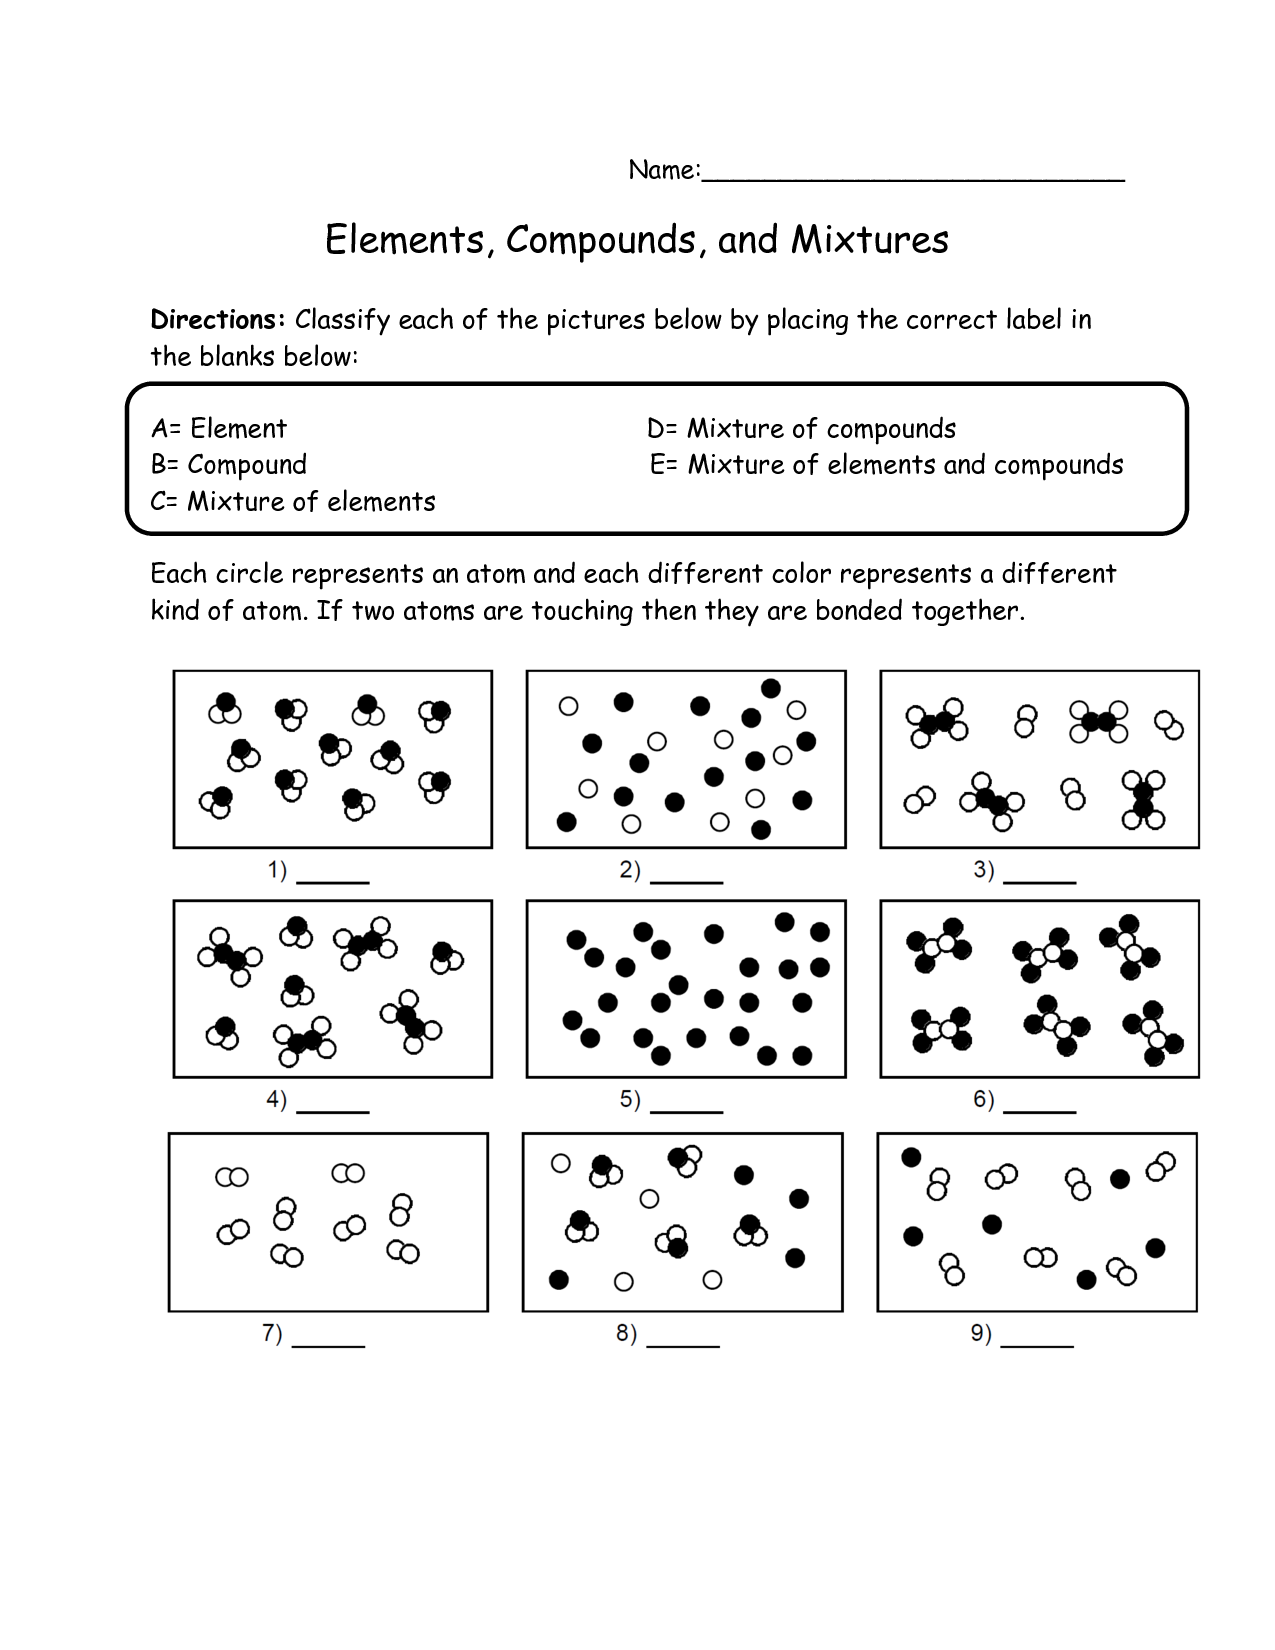 Printables Elements And Compounds Worksheet elements compounds and mixtures worksheets davezan elements